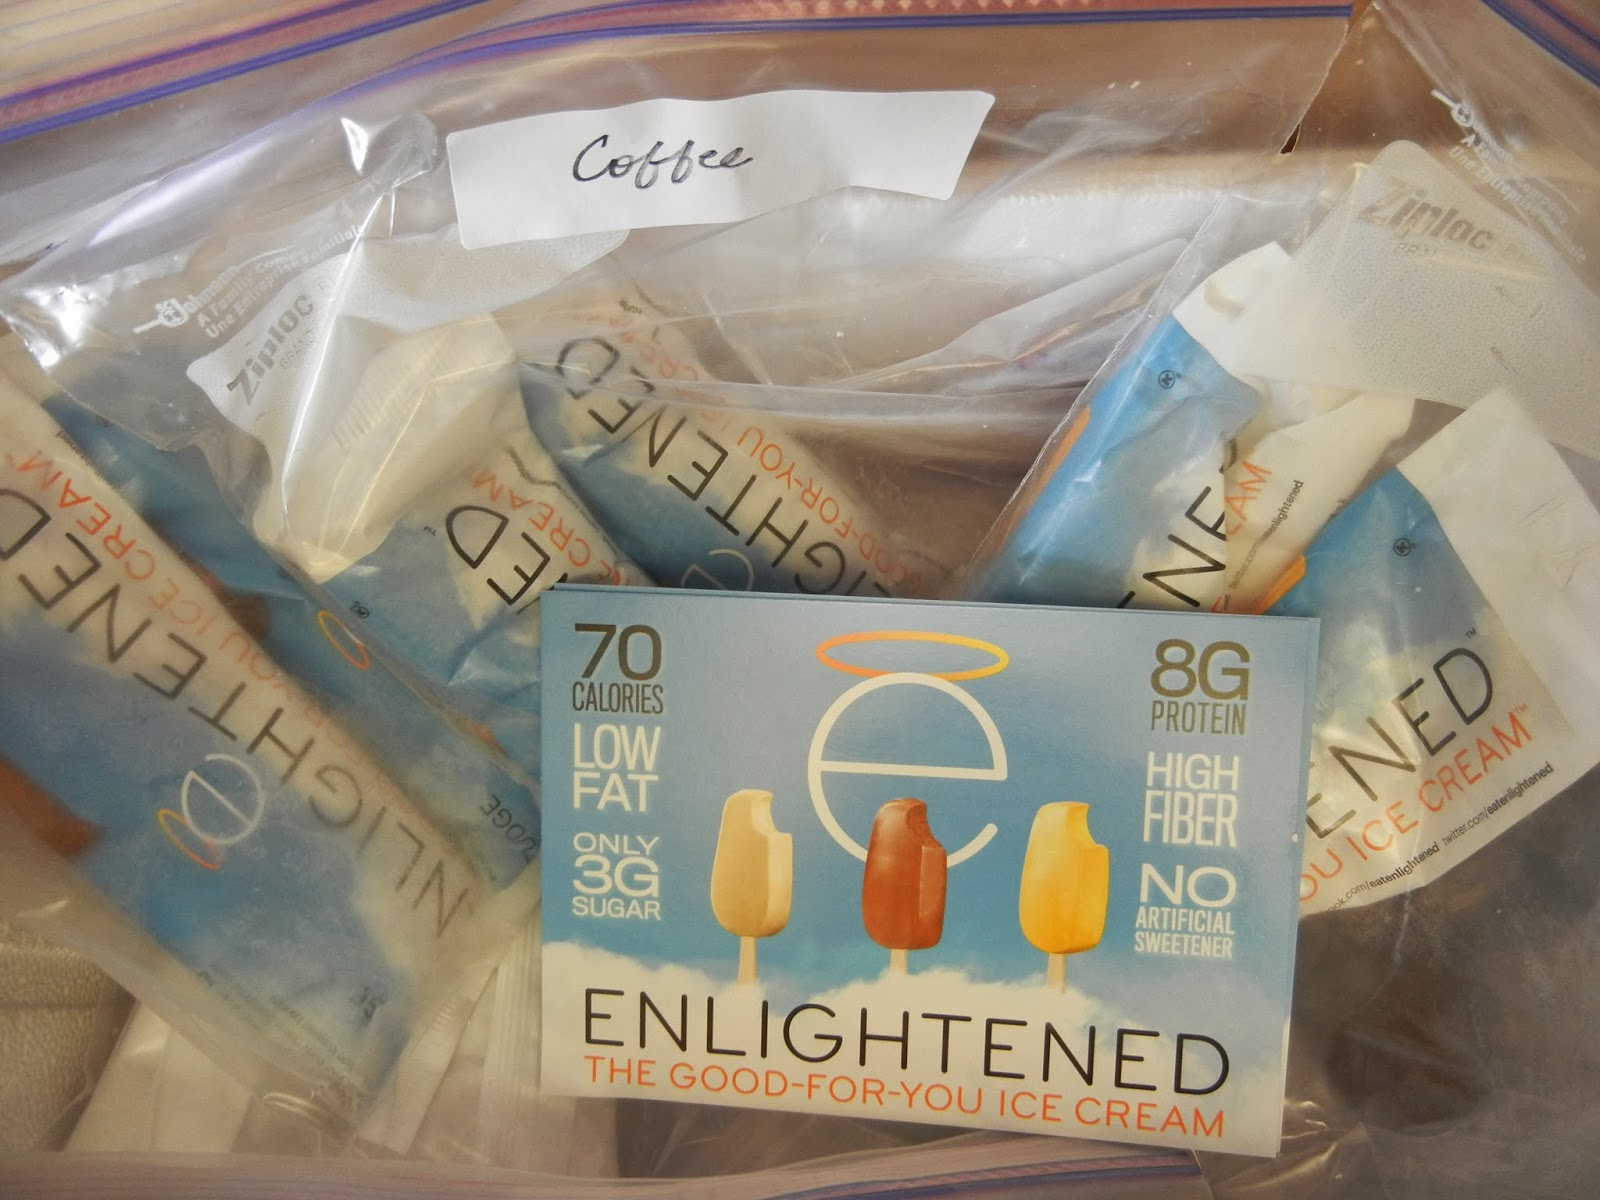 Enlightened+the+good+for+you+ice+cream+bars+sandwiches Weight Loss Recipes Friday Five